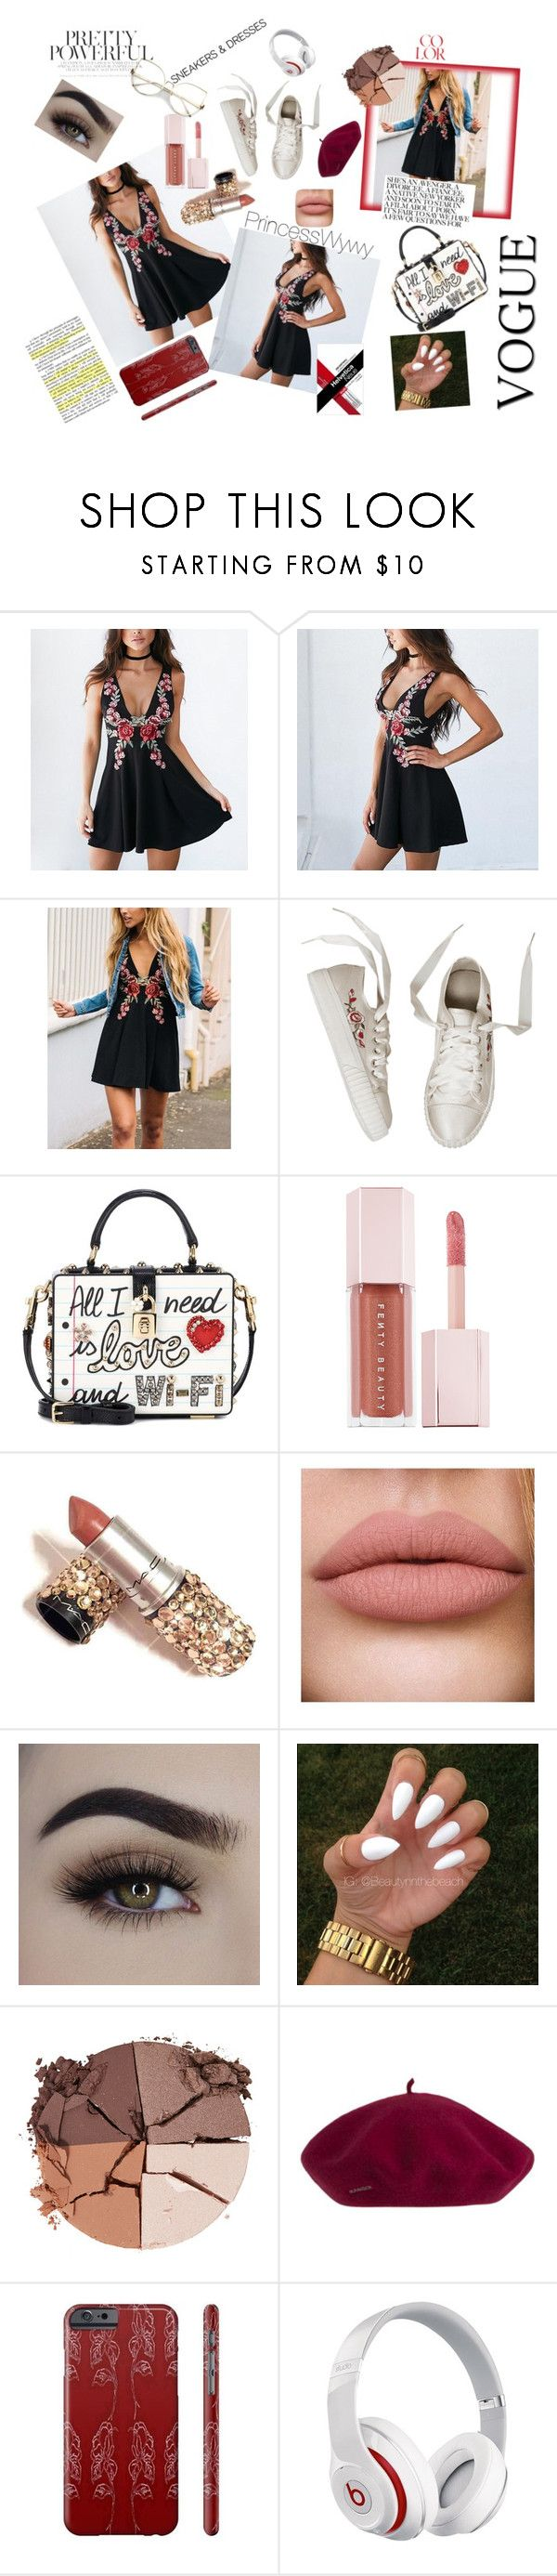 """""""Pretty powerful sneakers and dresses"""" by princesswywy ❤ liked on Polyvore featuring Dolce&Gabbana, Puma, lilah b. and Beats by Dr. Dre"""